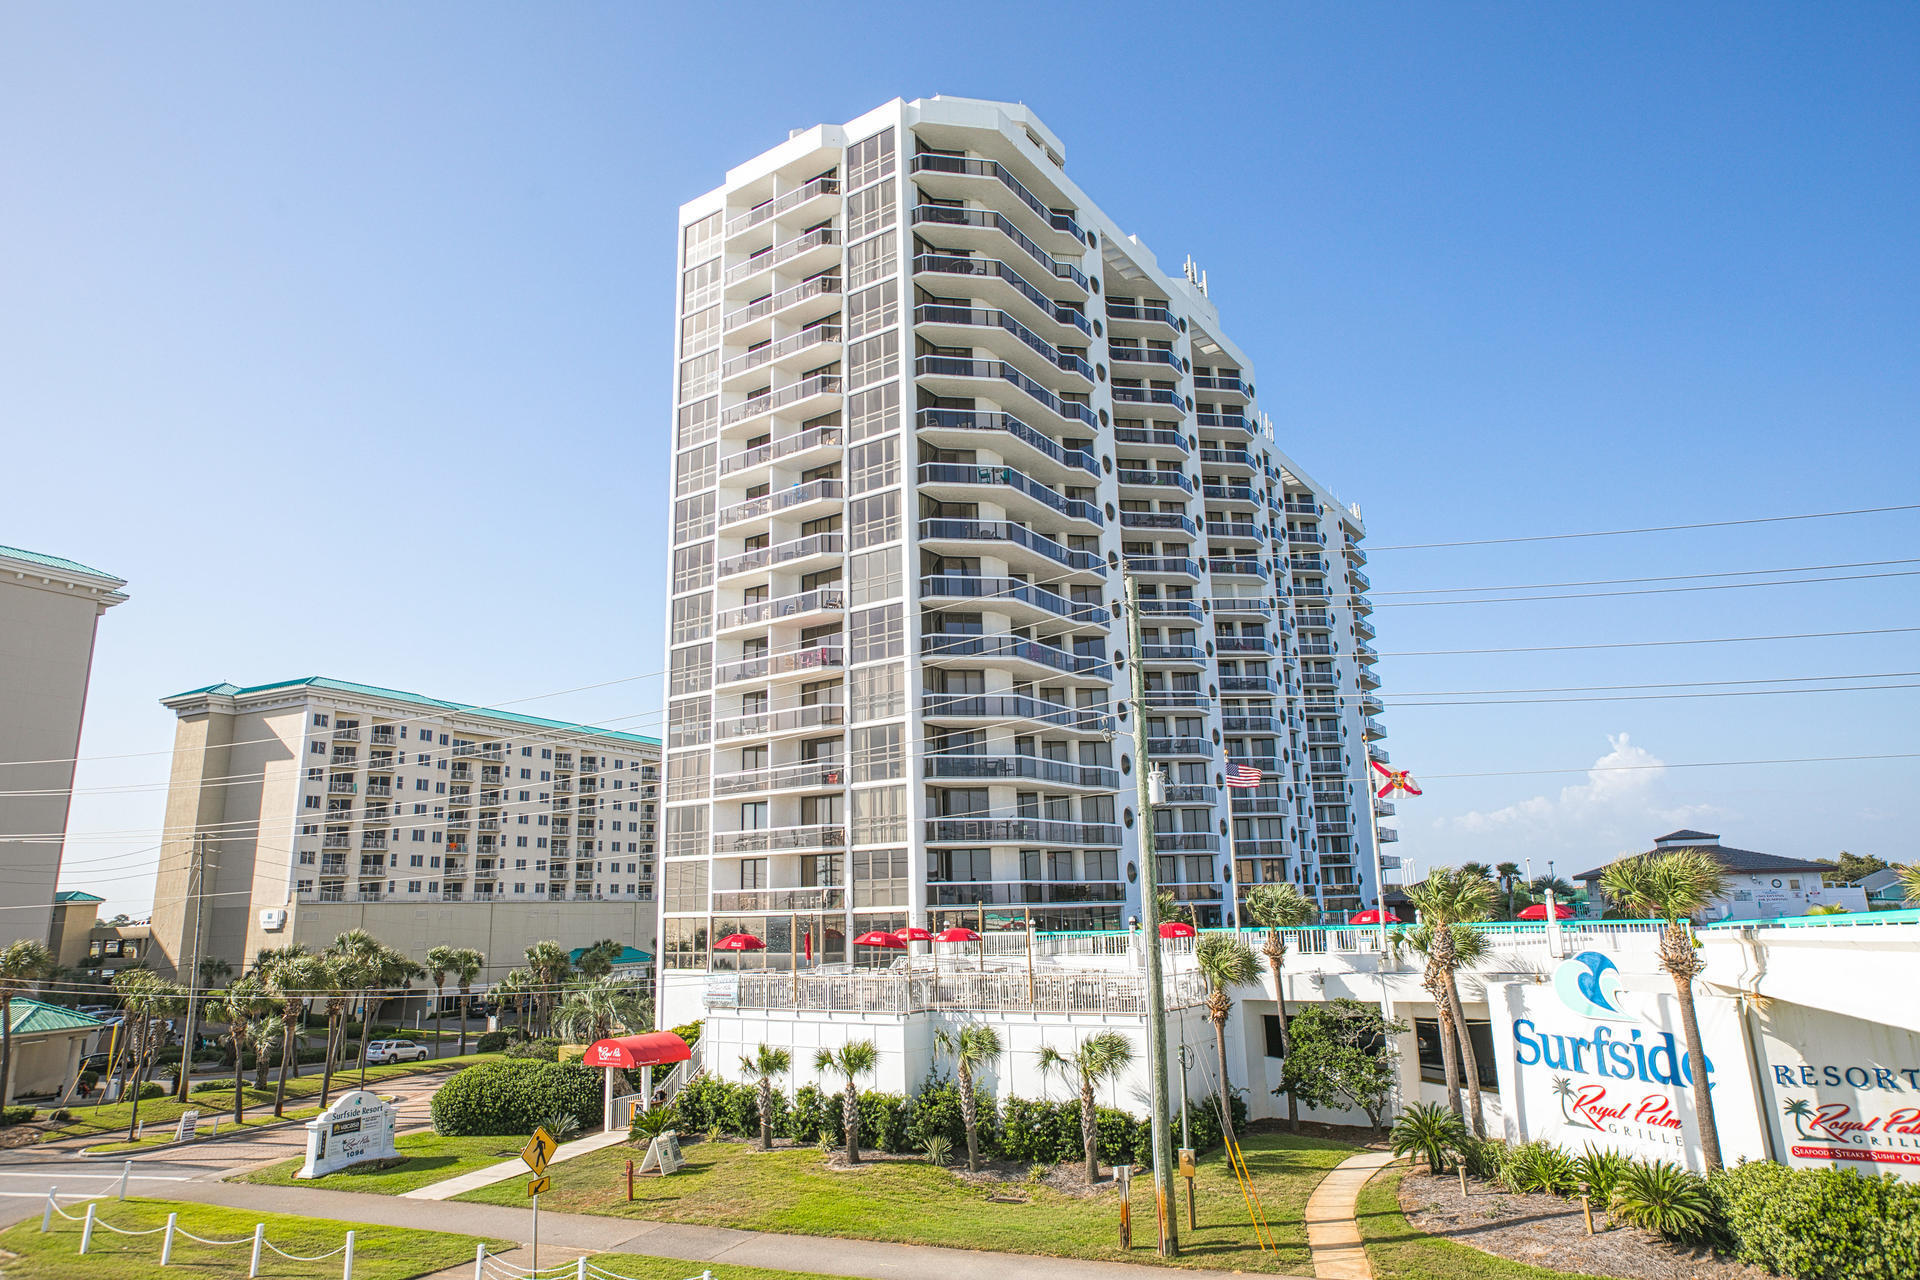 Fabulous views!!  Located on the 14th floor of the iconic Surfside building in Miramar Beach, this condo is definitely worth seeing!  Features 2 bedrooms and 2 full bathrooms with a split floor plan.  The Murphy bed is a great bonus for extra guests.  This property is offered fully furnished and has been very well maintained.  It would make for a great primary residence, second home, or excellent investment property. Surfside is located in Miramar Beach on Scenic Highway 98. Breathtaking views of the white sand beaches and emerald green waters can be enjoyed from the huge outdoor balcony. And there is a private walkover to the beach from the Surfside pool deck area. Surfside has a tremendous reputation and a track record for retaining repeat guests. Surfside amenities also include the Royal Palm Grille restaurant, covered parking garages (one for owners and one for guests), large pool deck with heated pool, sauna, fitness center, lighted tennis courts, basketball, shuffle board, pool side Tiki Hut/beach bar, and spa and hair/nail/facial salon.  The Silver Sands outlet malls, and many restaurant options are just a few minutes away.  If you are looking for a wonderful condo option right in the heart of it all in popular Miramar Beach, look no further! Please call today!